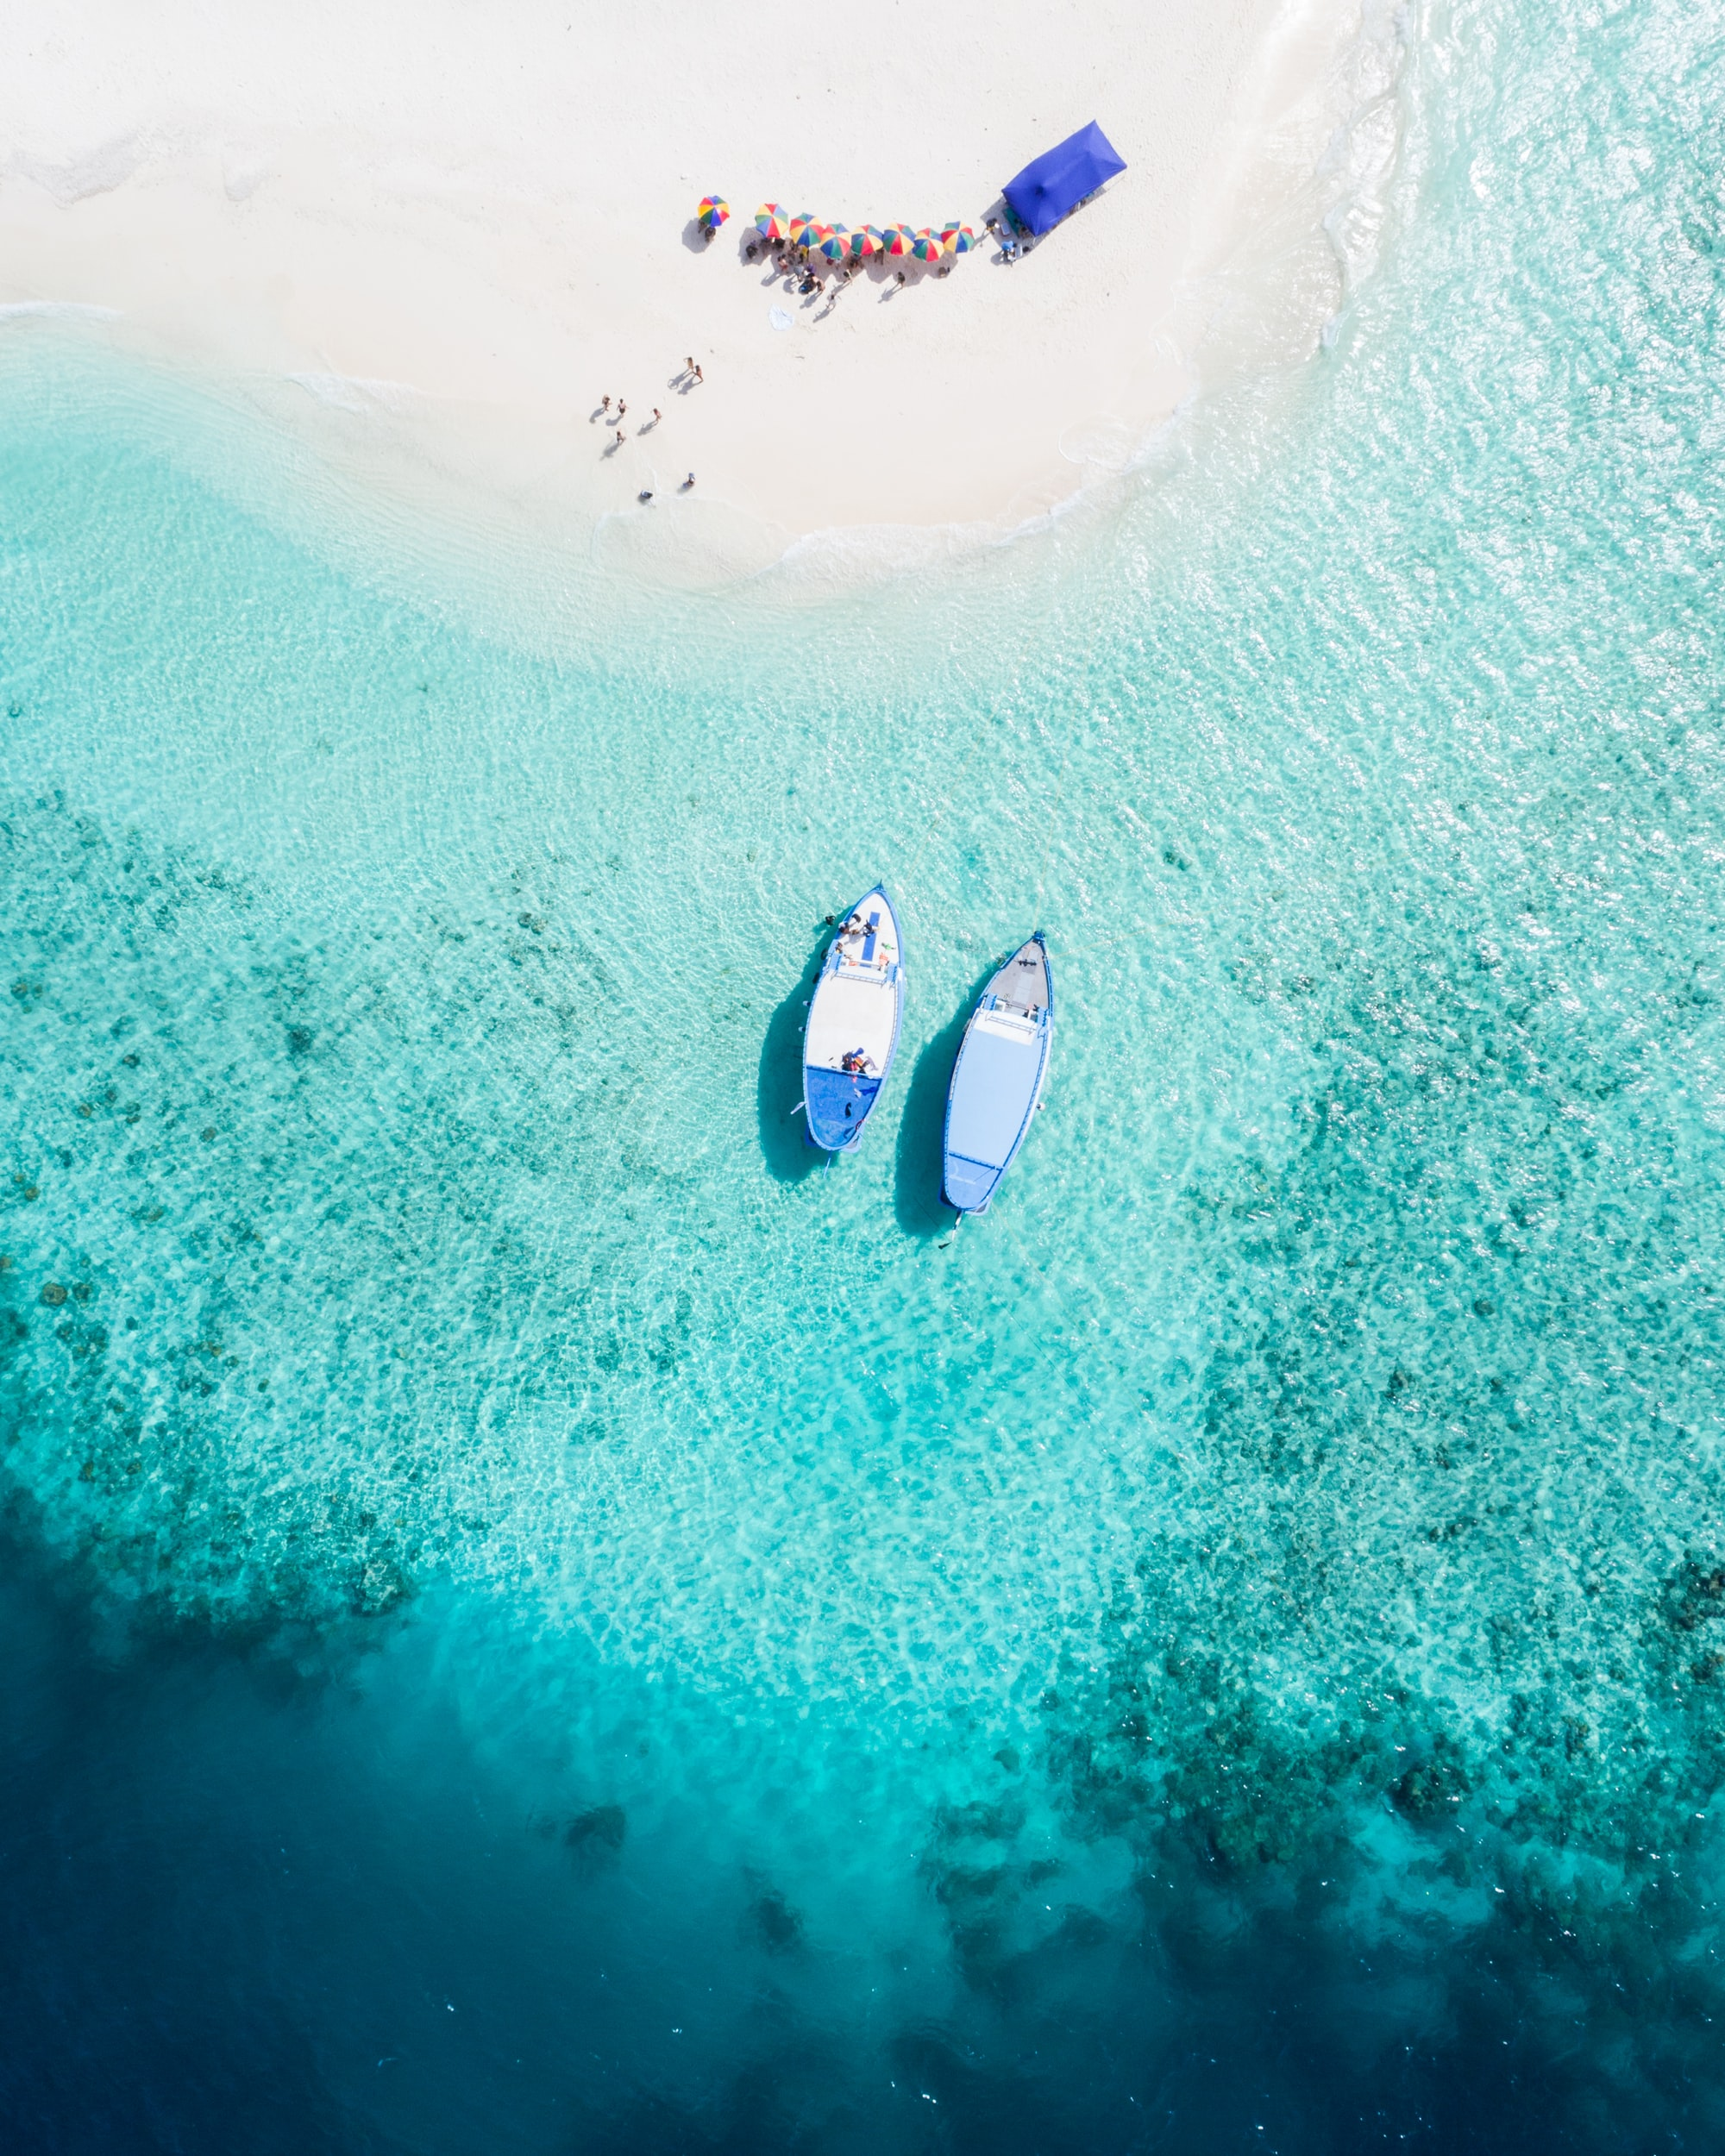 We travelled on those Dhoani (boats) from K. Maafushi island to have some fun in a sand bank surrounded by the beauty.